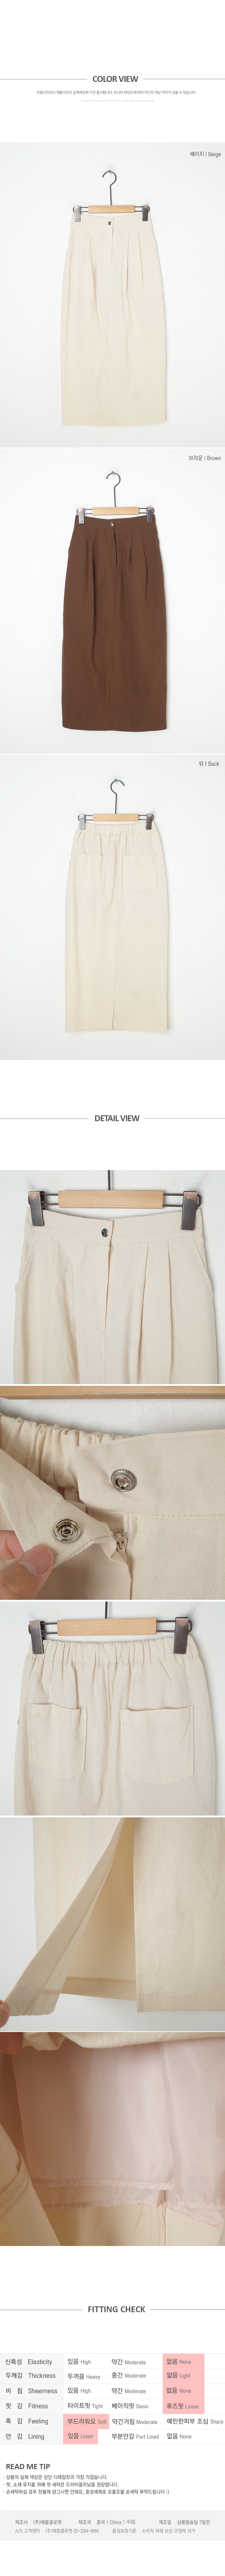 Simple skirt recommended mood